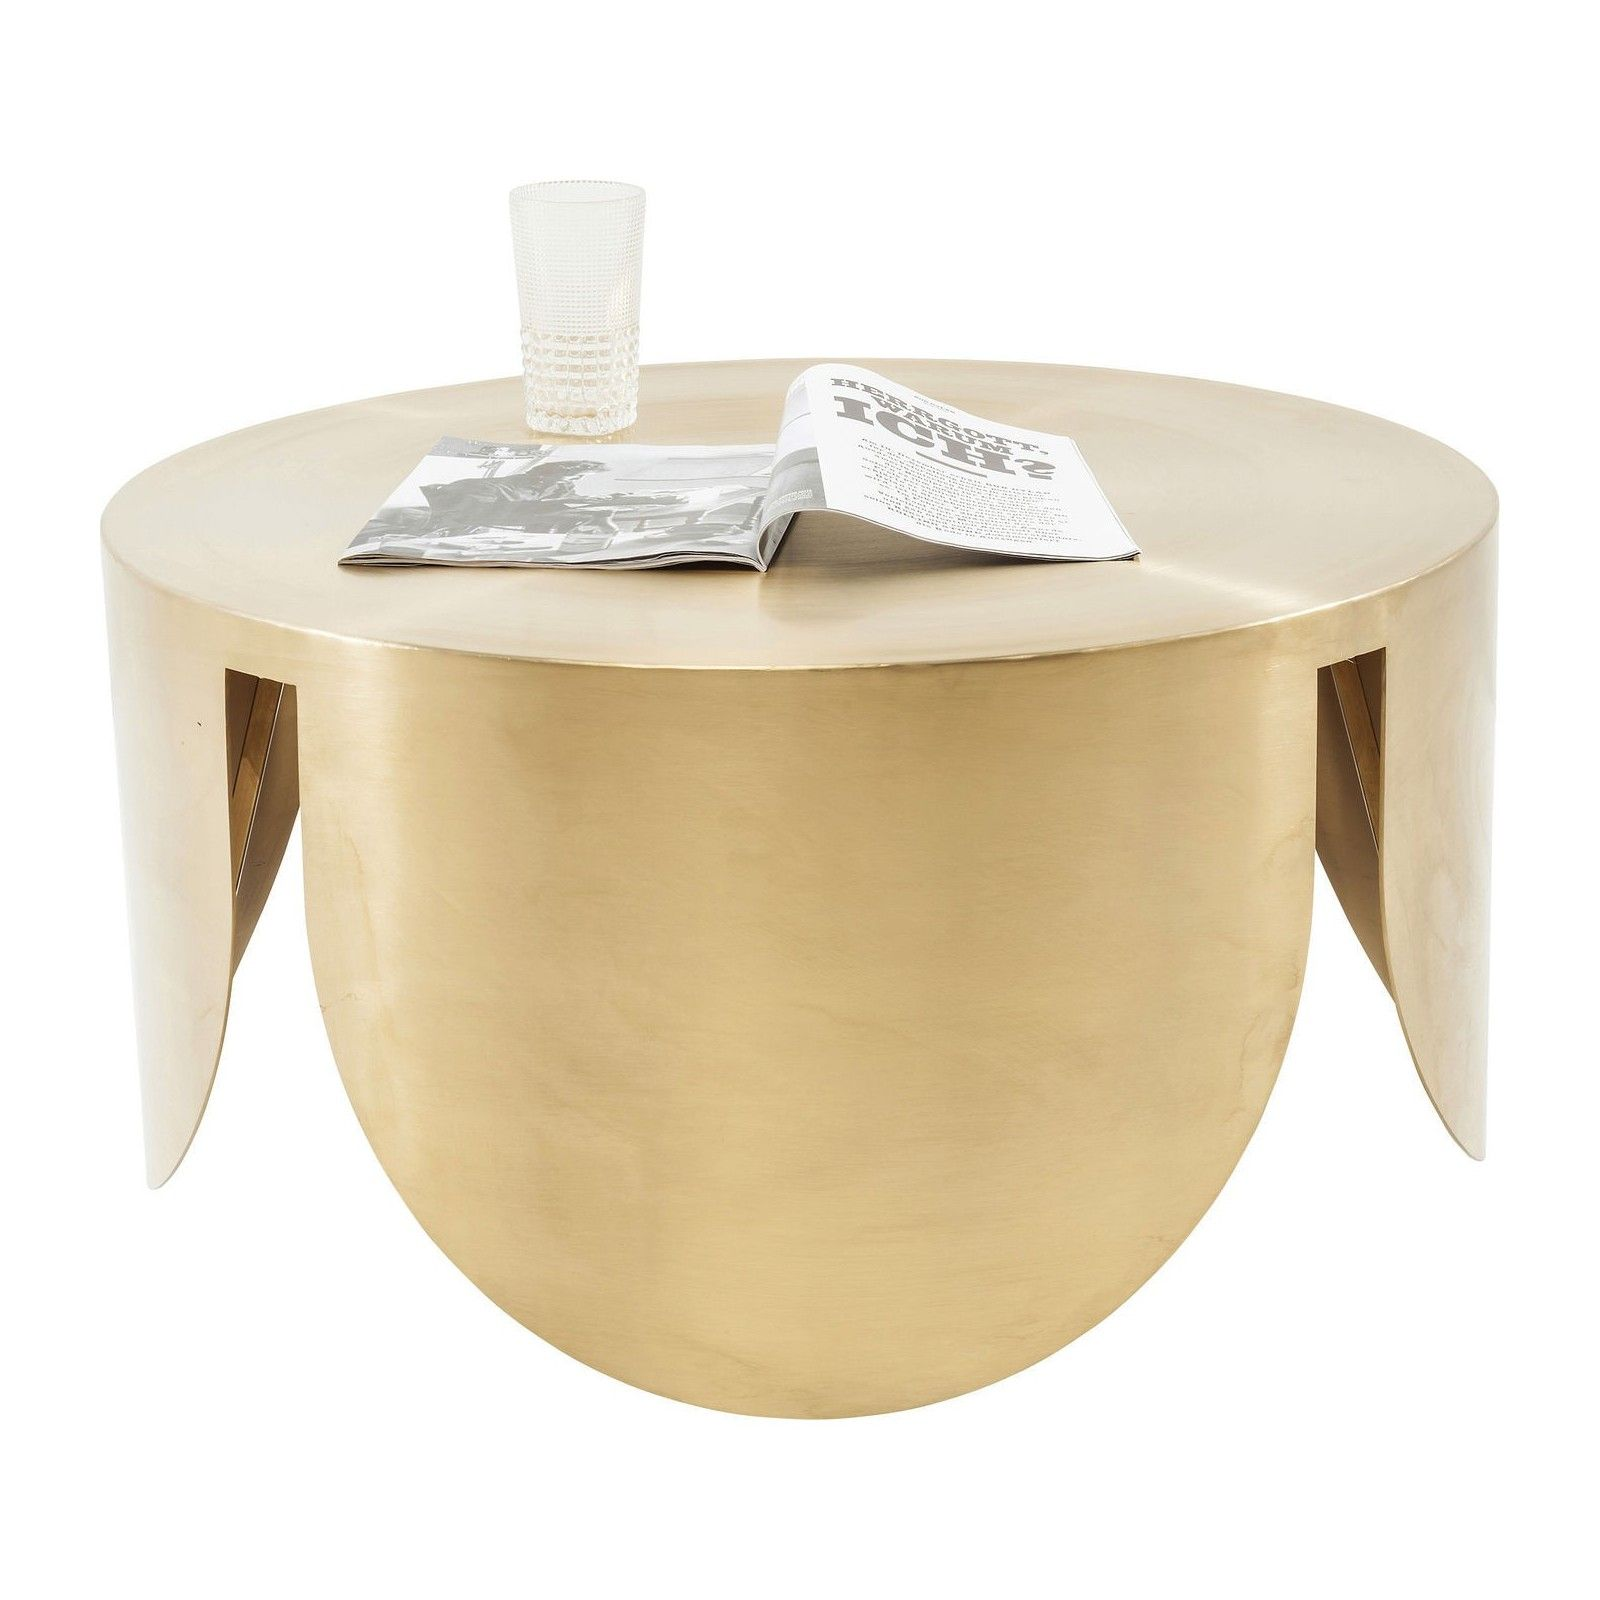 Table Basse Retro Dore New Wave Kare Design Table Basse Table Basse Verre Kare Design